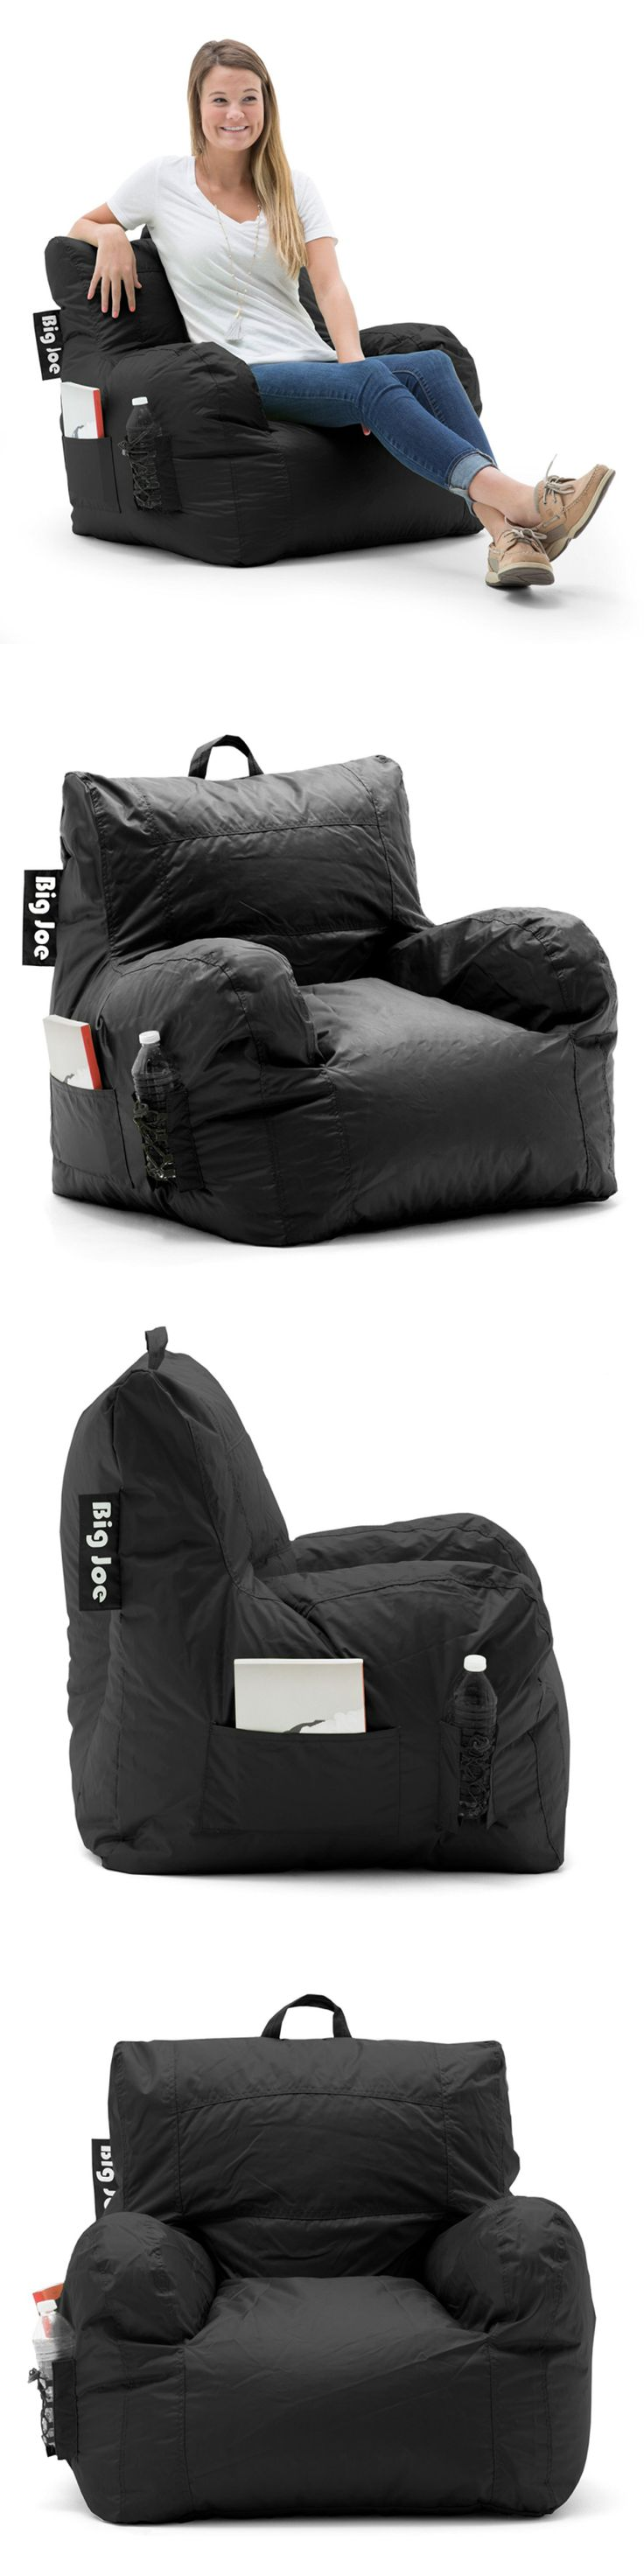 Bean Bags and Inflatables 48319: Big Joe Dorm Chair, Limo Black Bean Bag Lounge Seat, Kids Gaming Comfort Lounger -> BUY IT NOW ONLY: $68.56 on eBay!